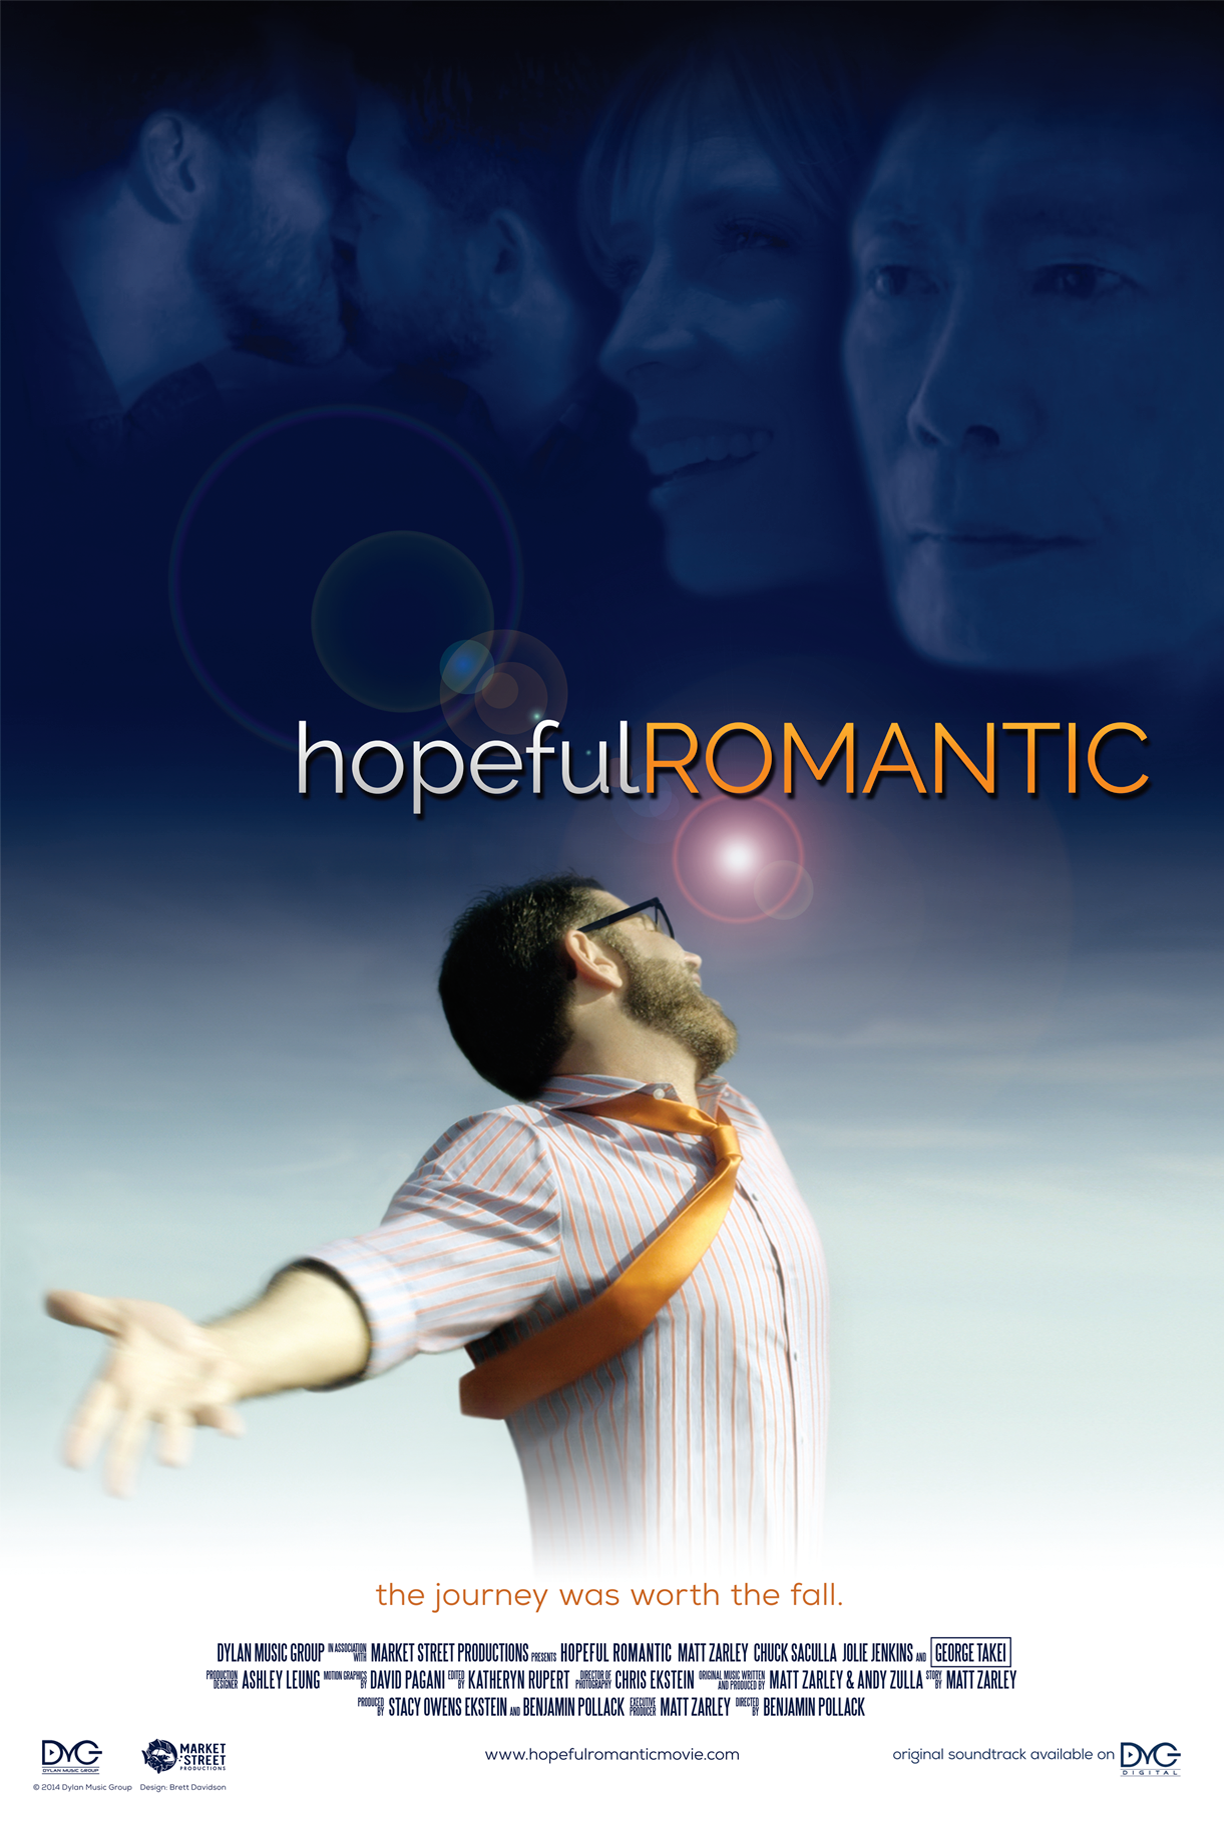 hopefulROMANTIC